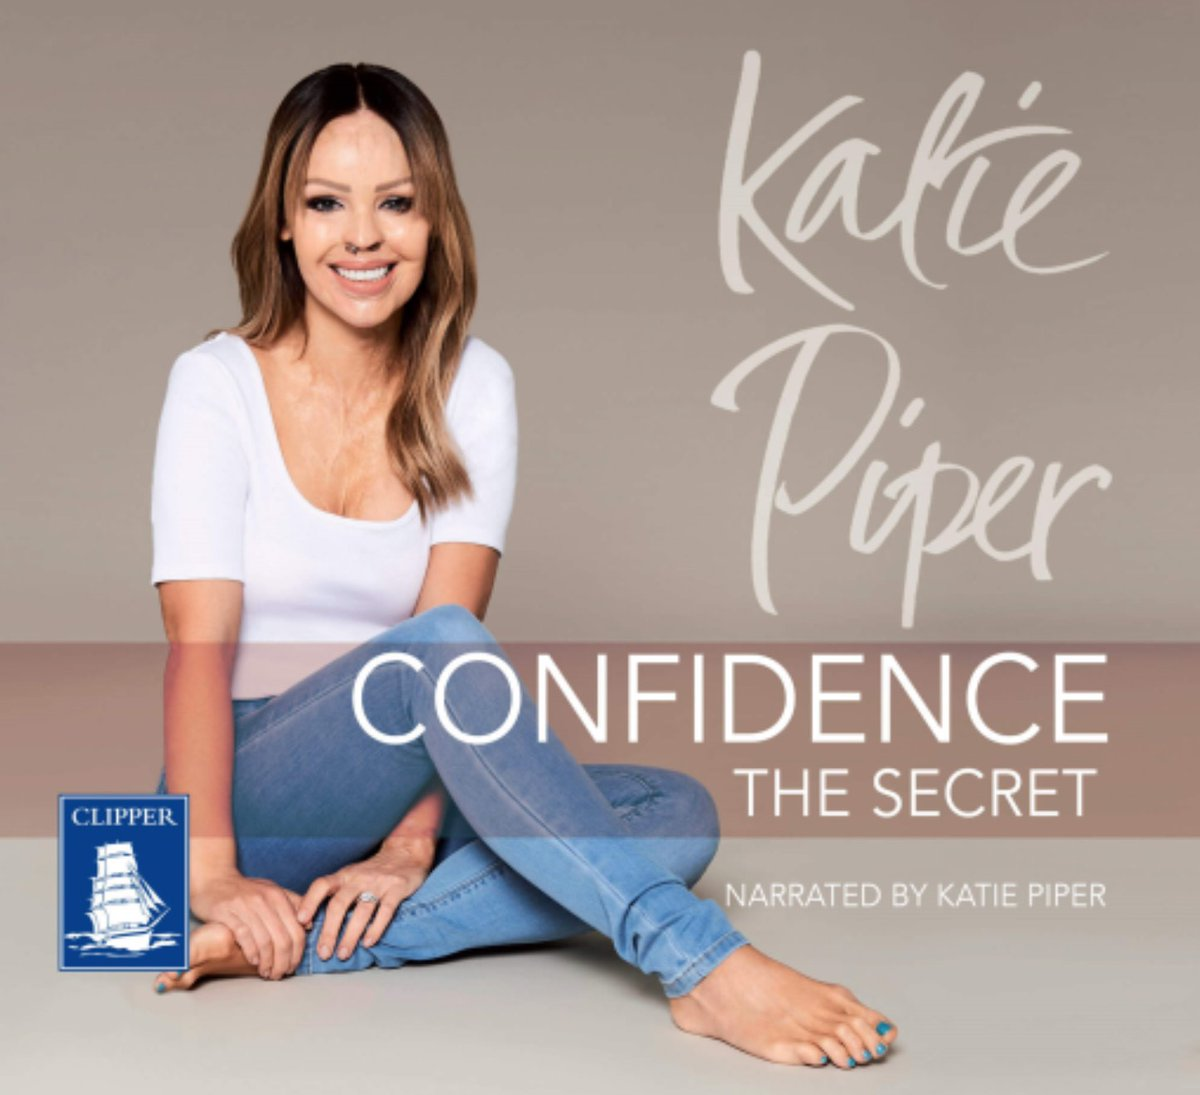 Confidence is written and narrated by Katie Piper, a woman who has overcome gruelling and emotional hurdles and emerged on the other side. Katie shares what she has learned from her most difficult moments to inspire and guide others to feel happy and confident in their own lives. https://t.co/VcKKpwsw5s